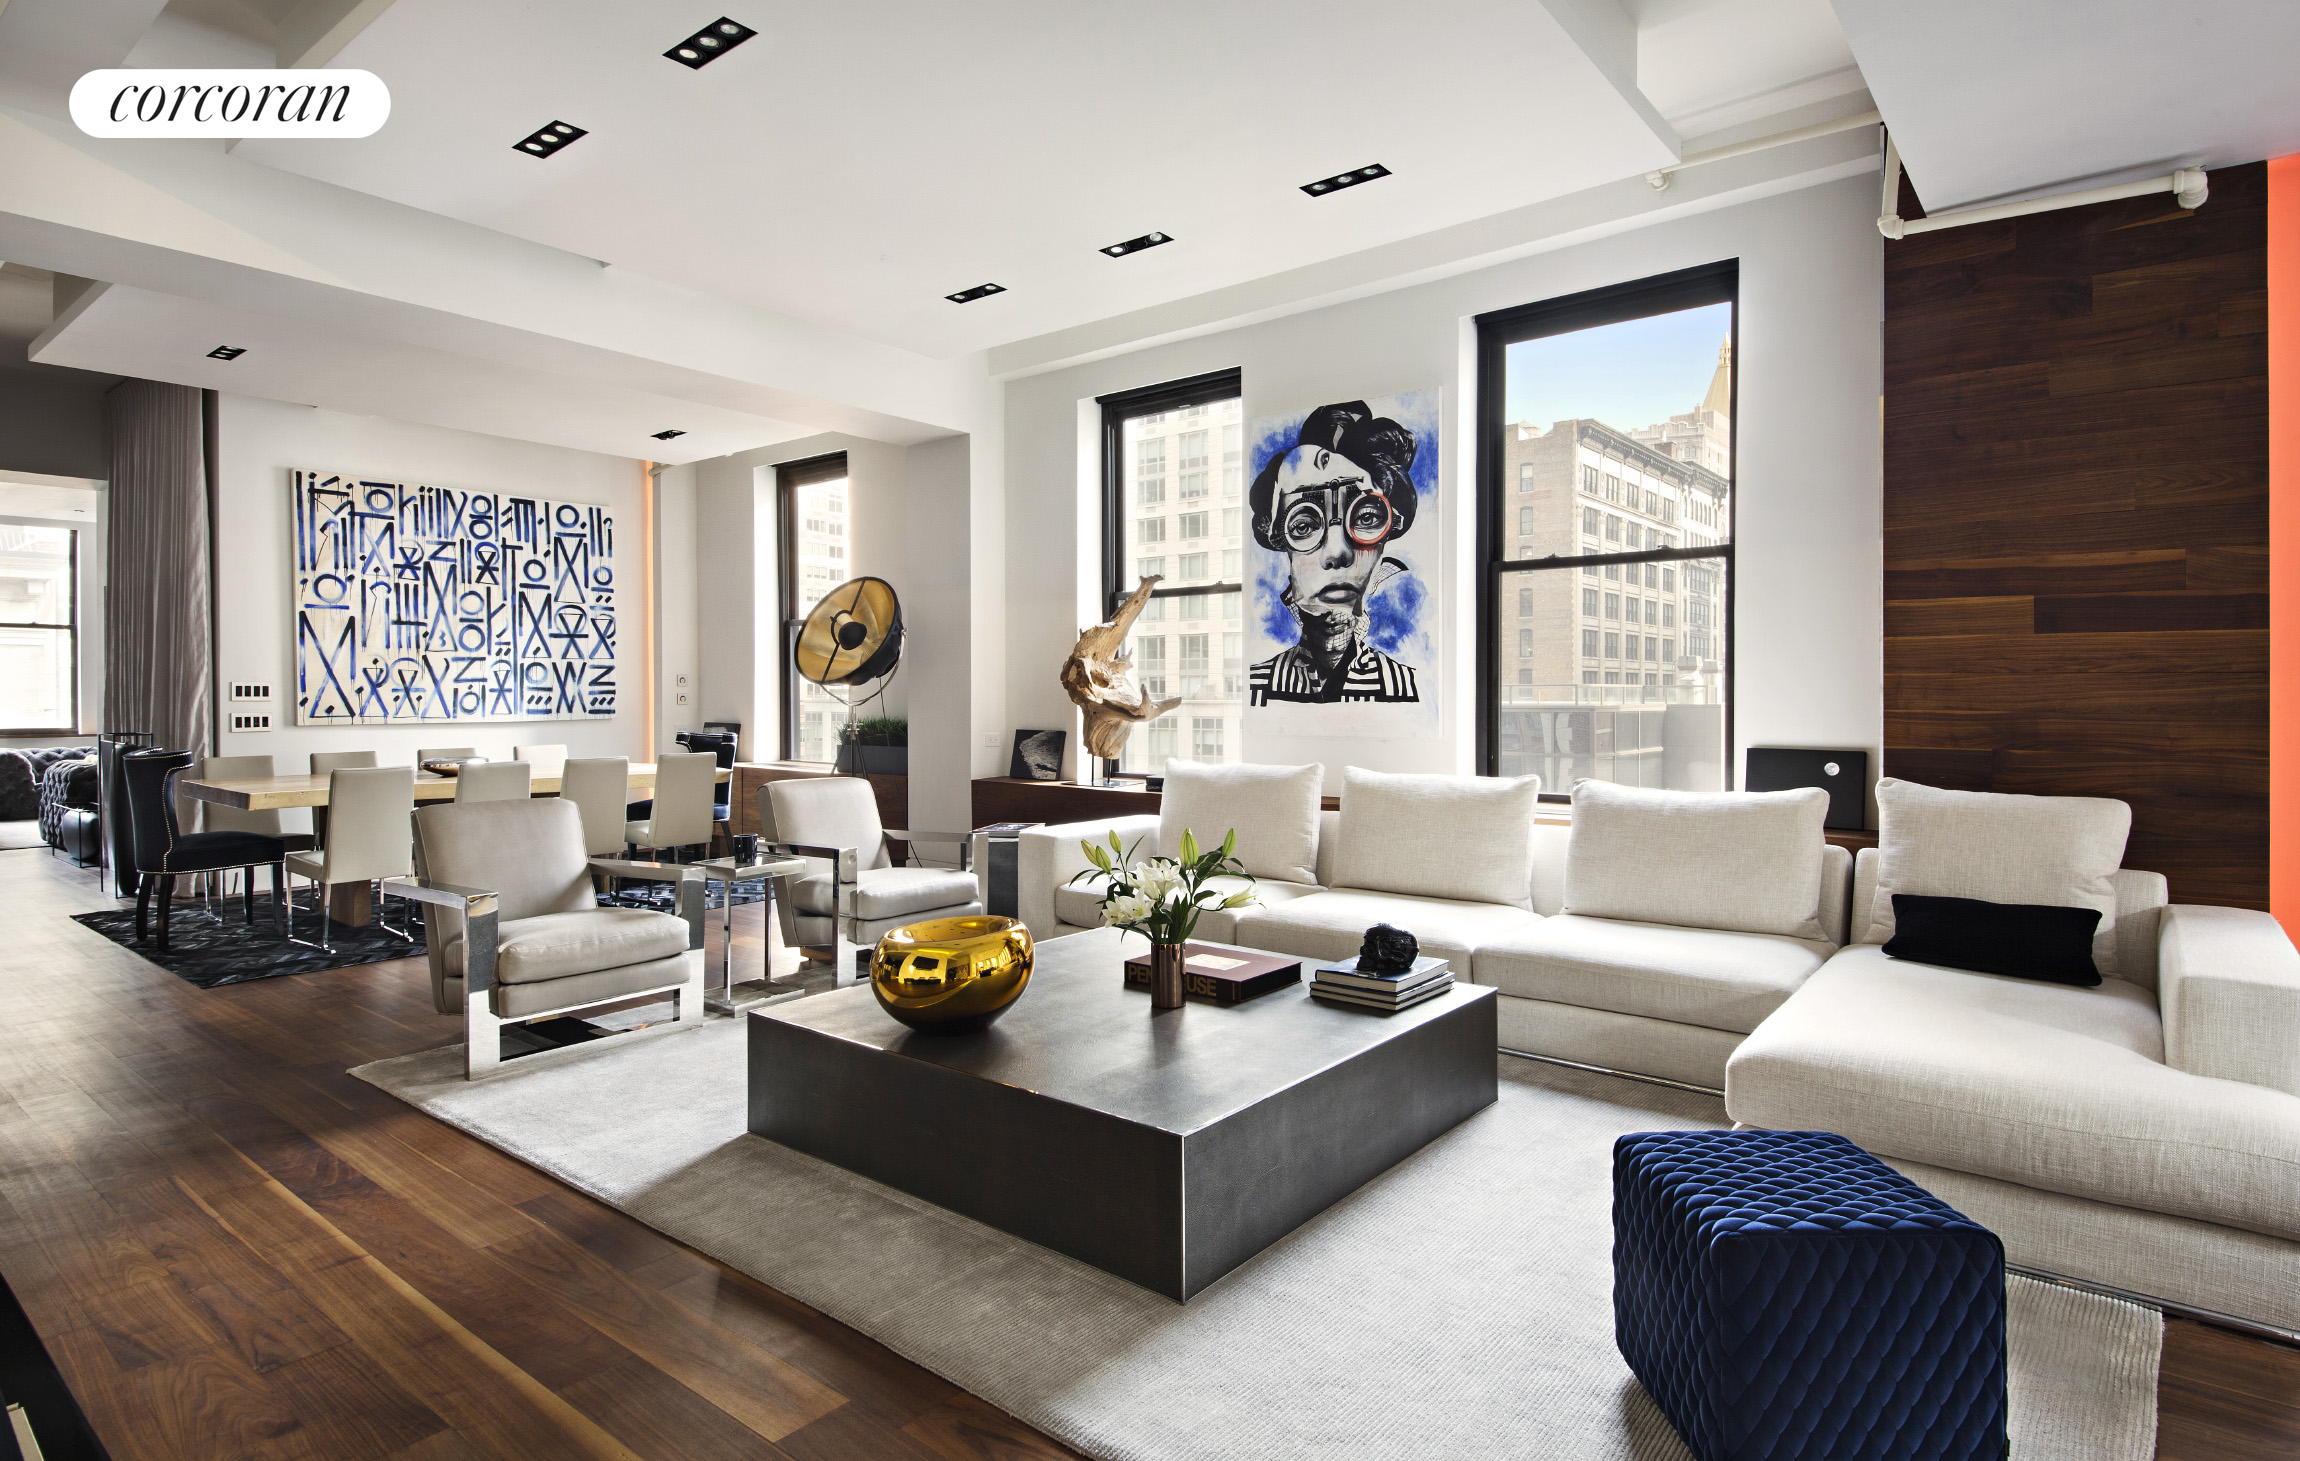 110 West 25th Street, 6 FL, Living Room